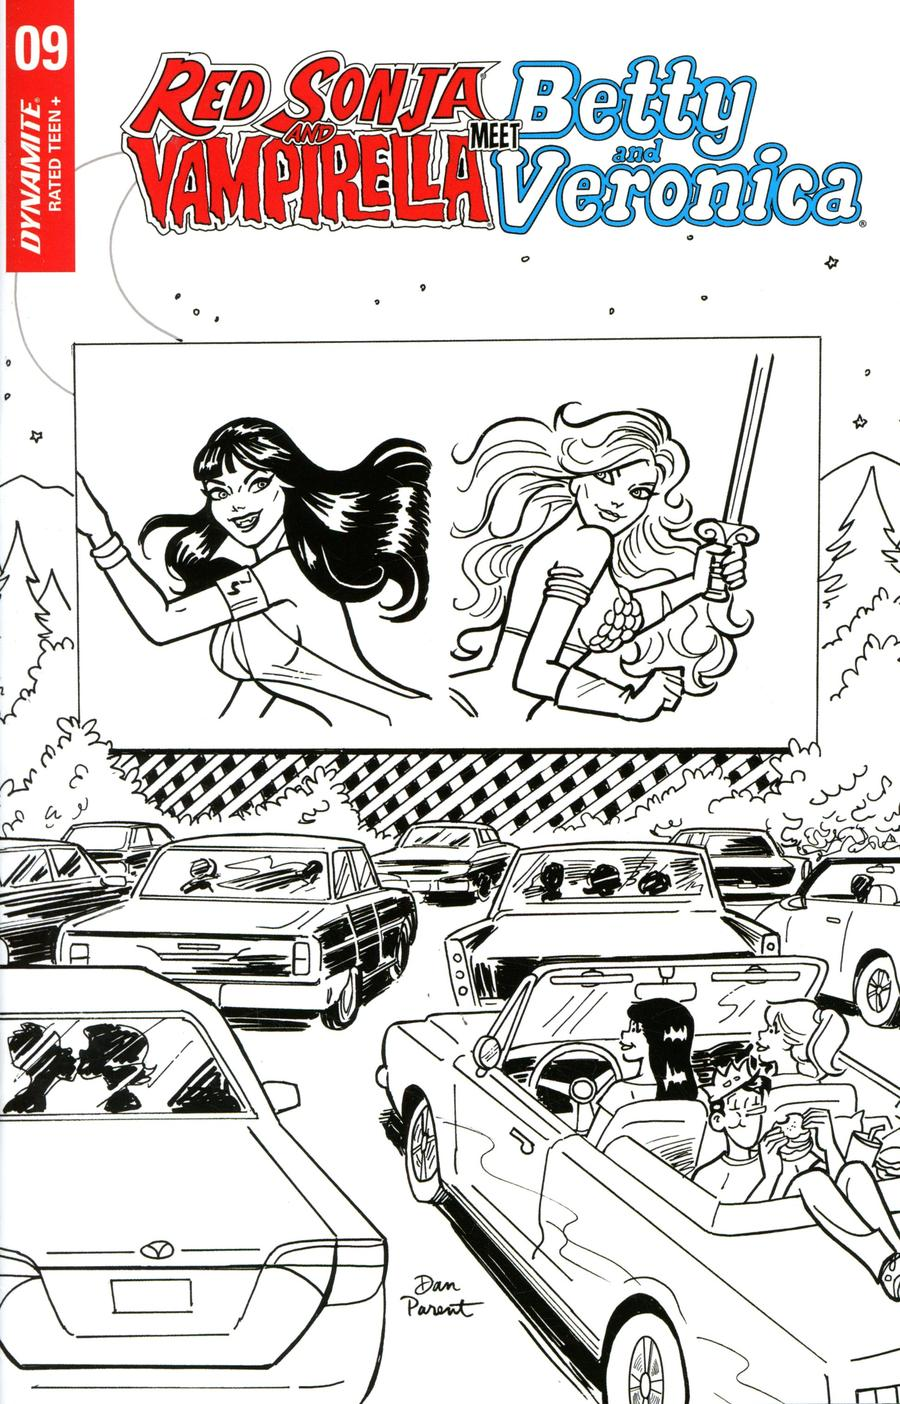 Red Sonja And Vampirella Meet Betty And Veronica #9 Cover G Incentive Dan Parent Black & White Cover